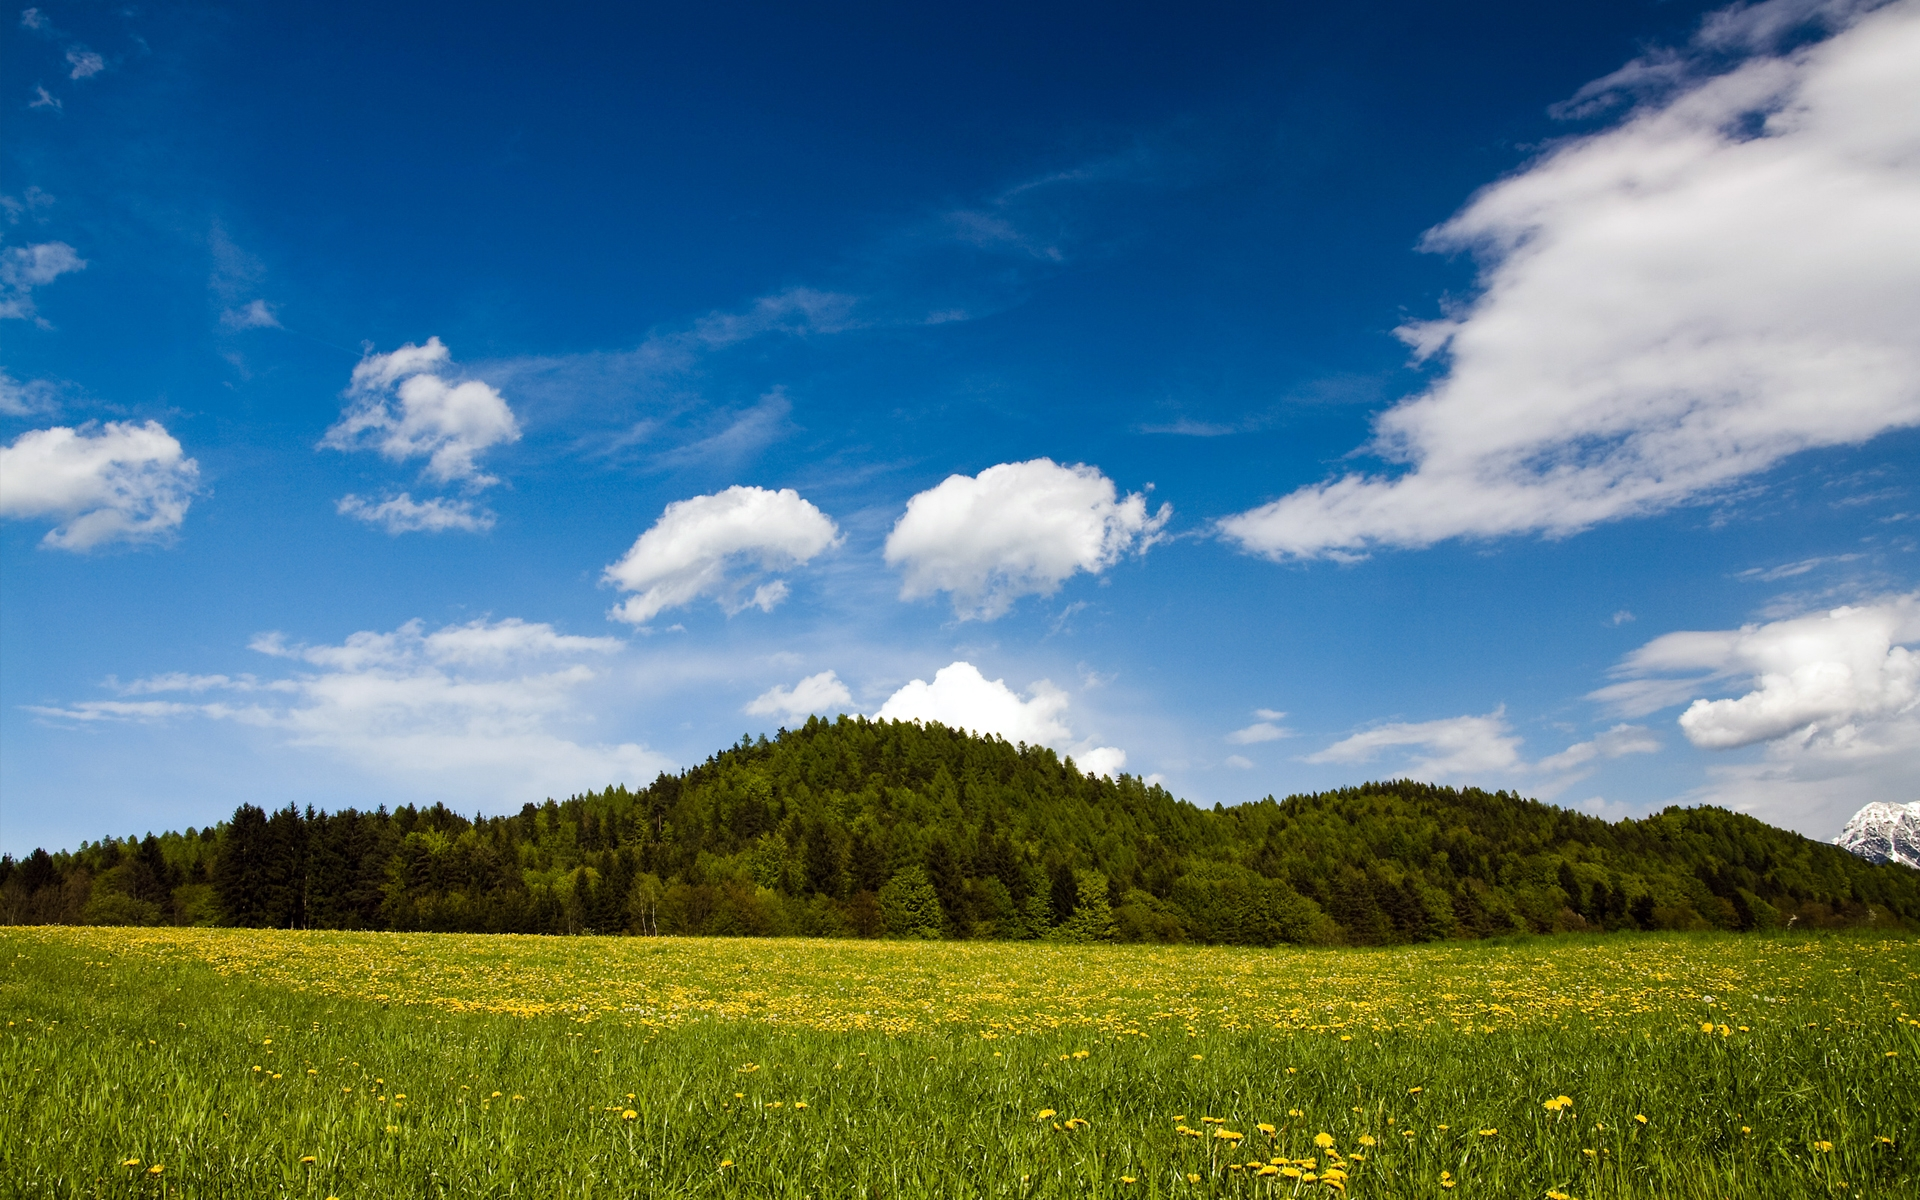 Nature Backgrounds In High Quality: Sunny Day by Todd Allen